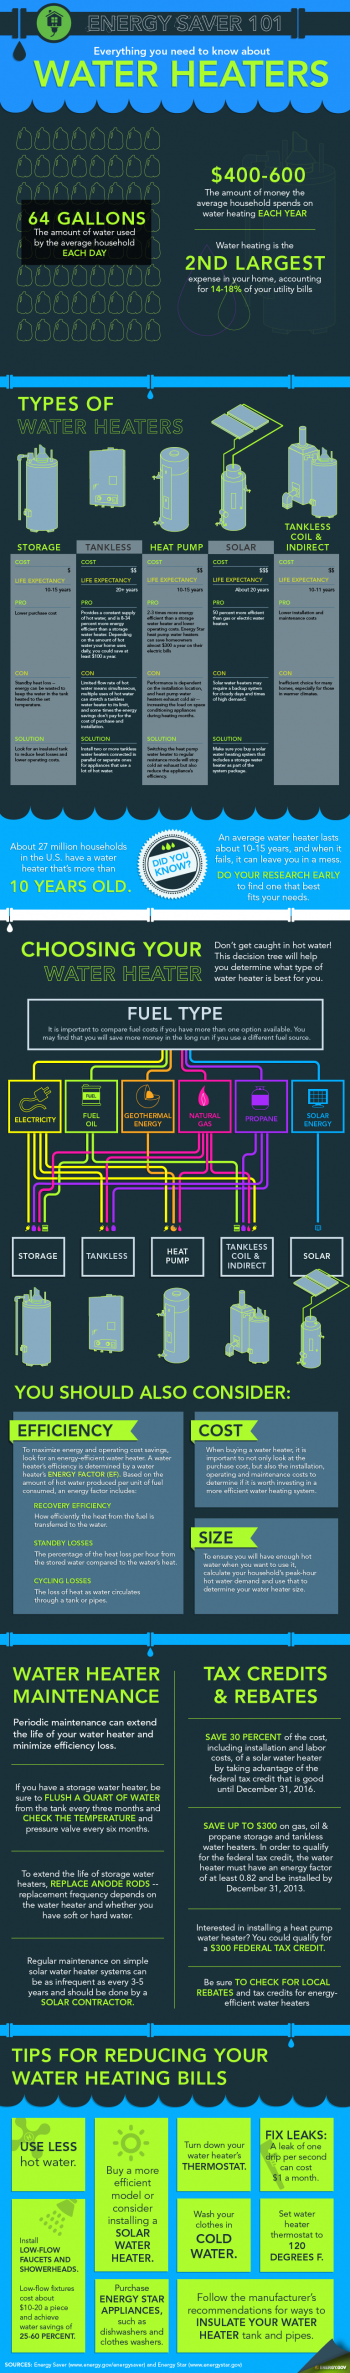 "Our Energy Saver 101 infographic lays out the different types of water heaters on the market and will help you figure out how to select the best model for your home. Download a high-resolution version of the <a href=""/node/612506"">infographic</a>. 